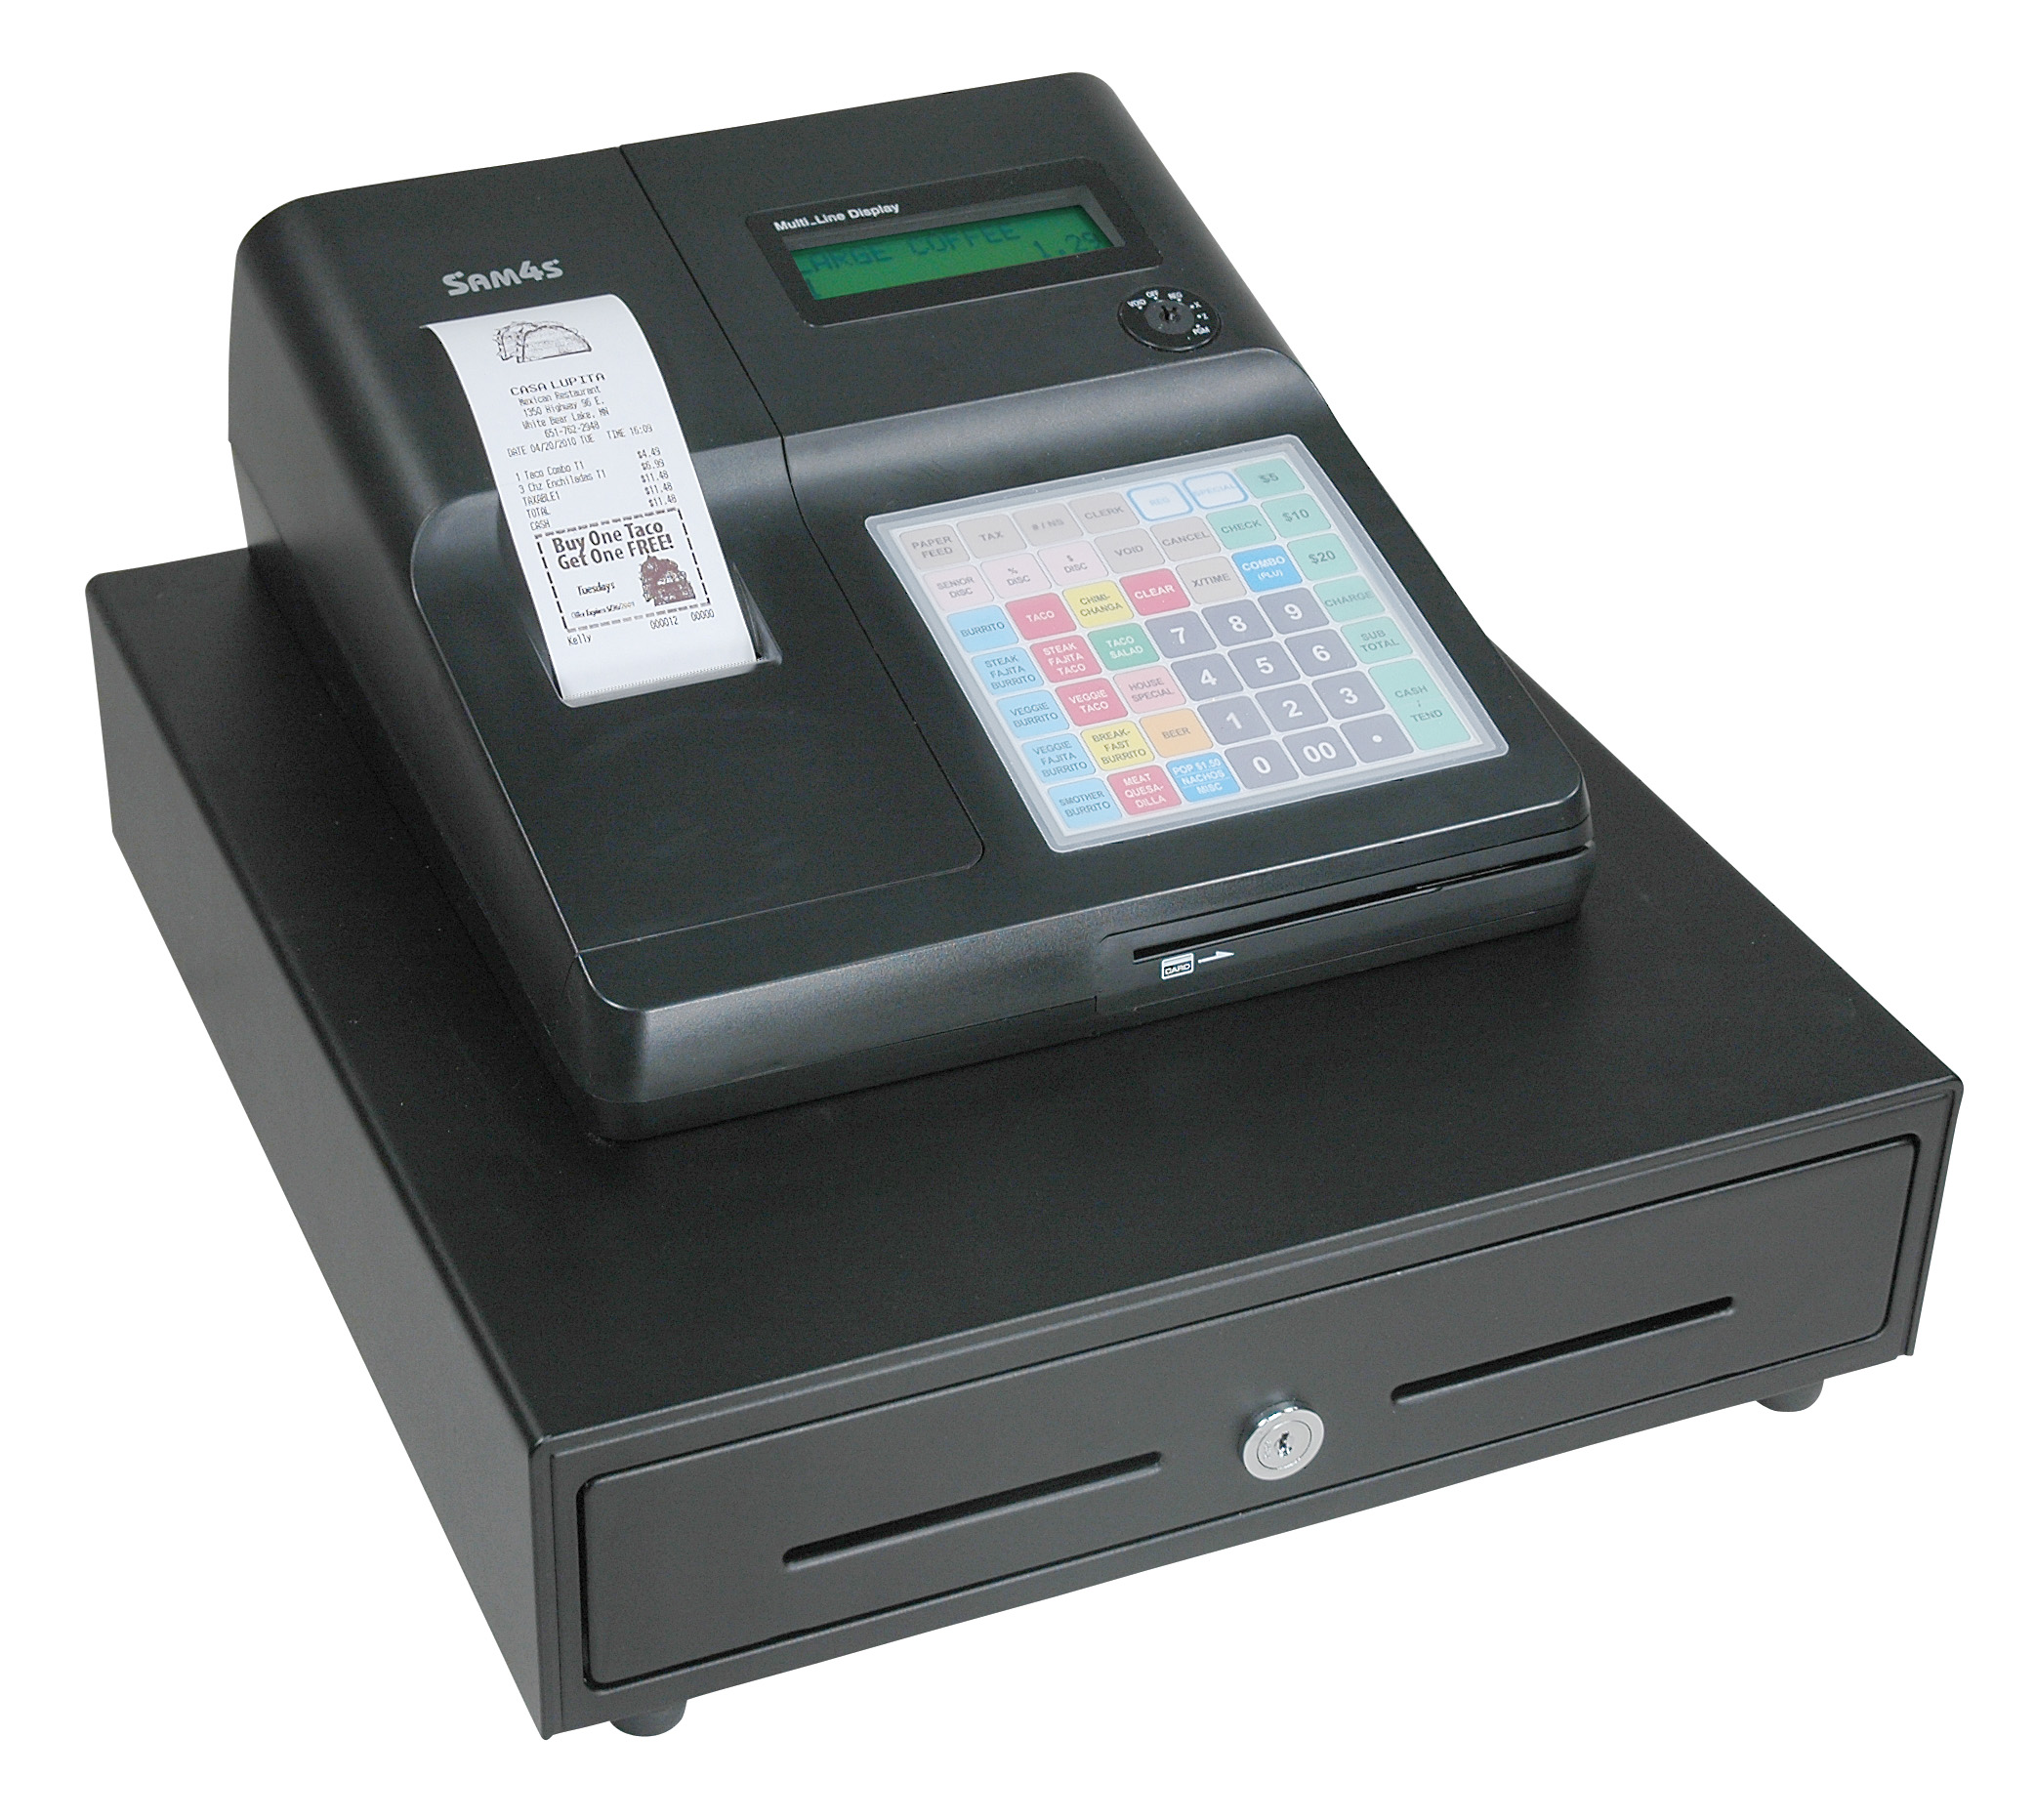 Sam4s ER-285M Cash Register w/Cas SW-10R Scale